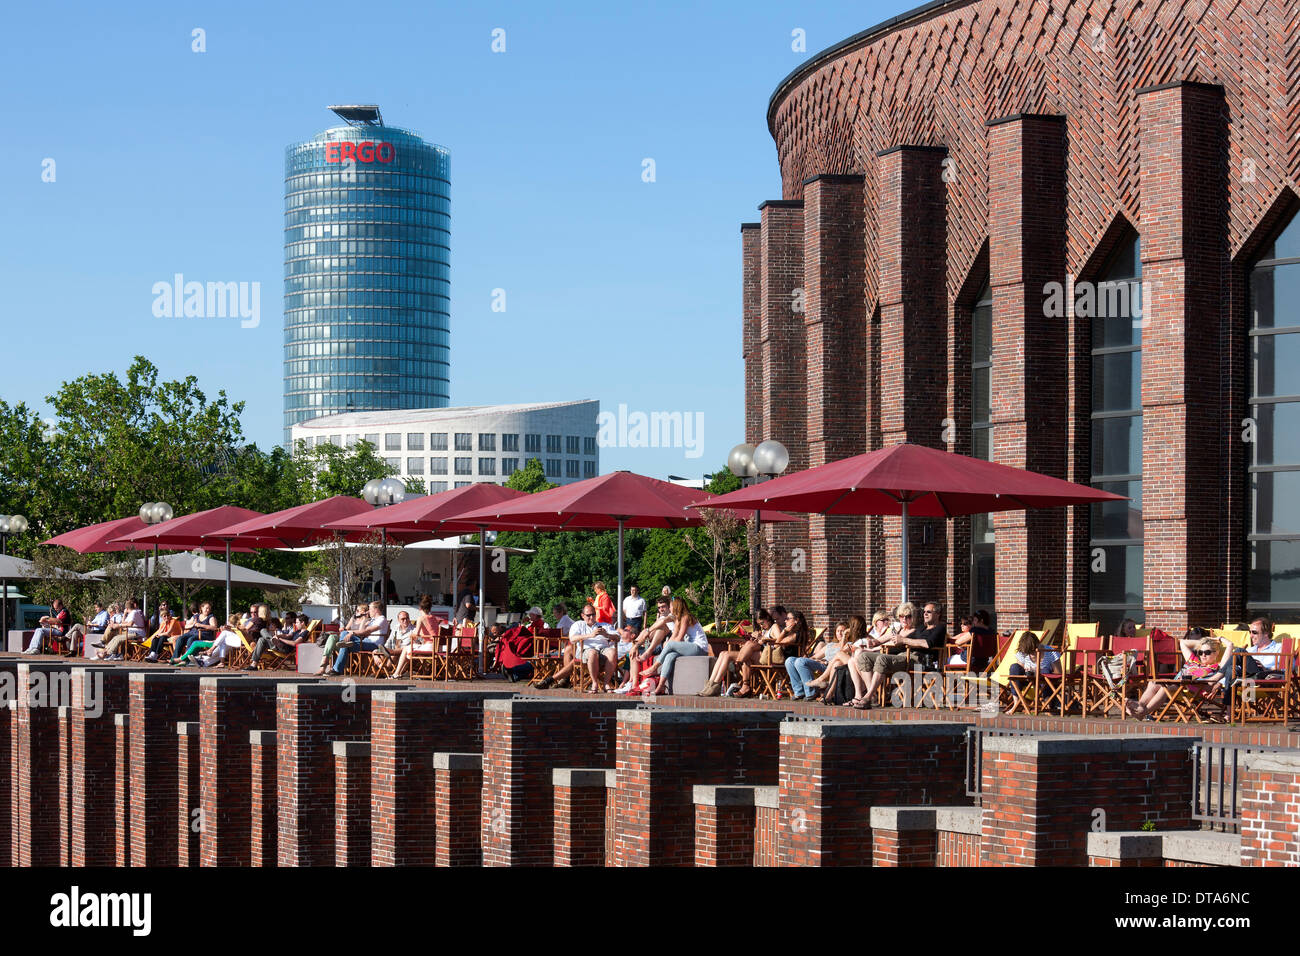 d sseldorf tonhalle terrasse mit biergarten und liegest hlen stockfoto bild 66607672 alamy. Black Bedroom Furniture Sets. Home Design Ideas